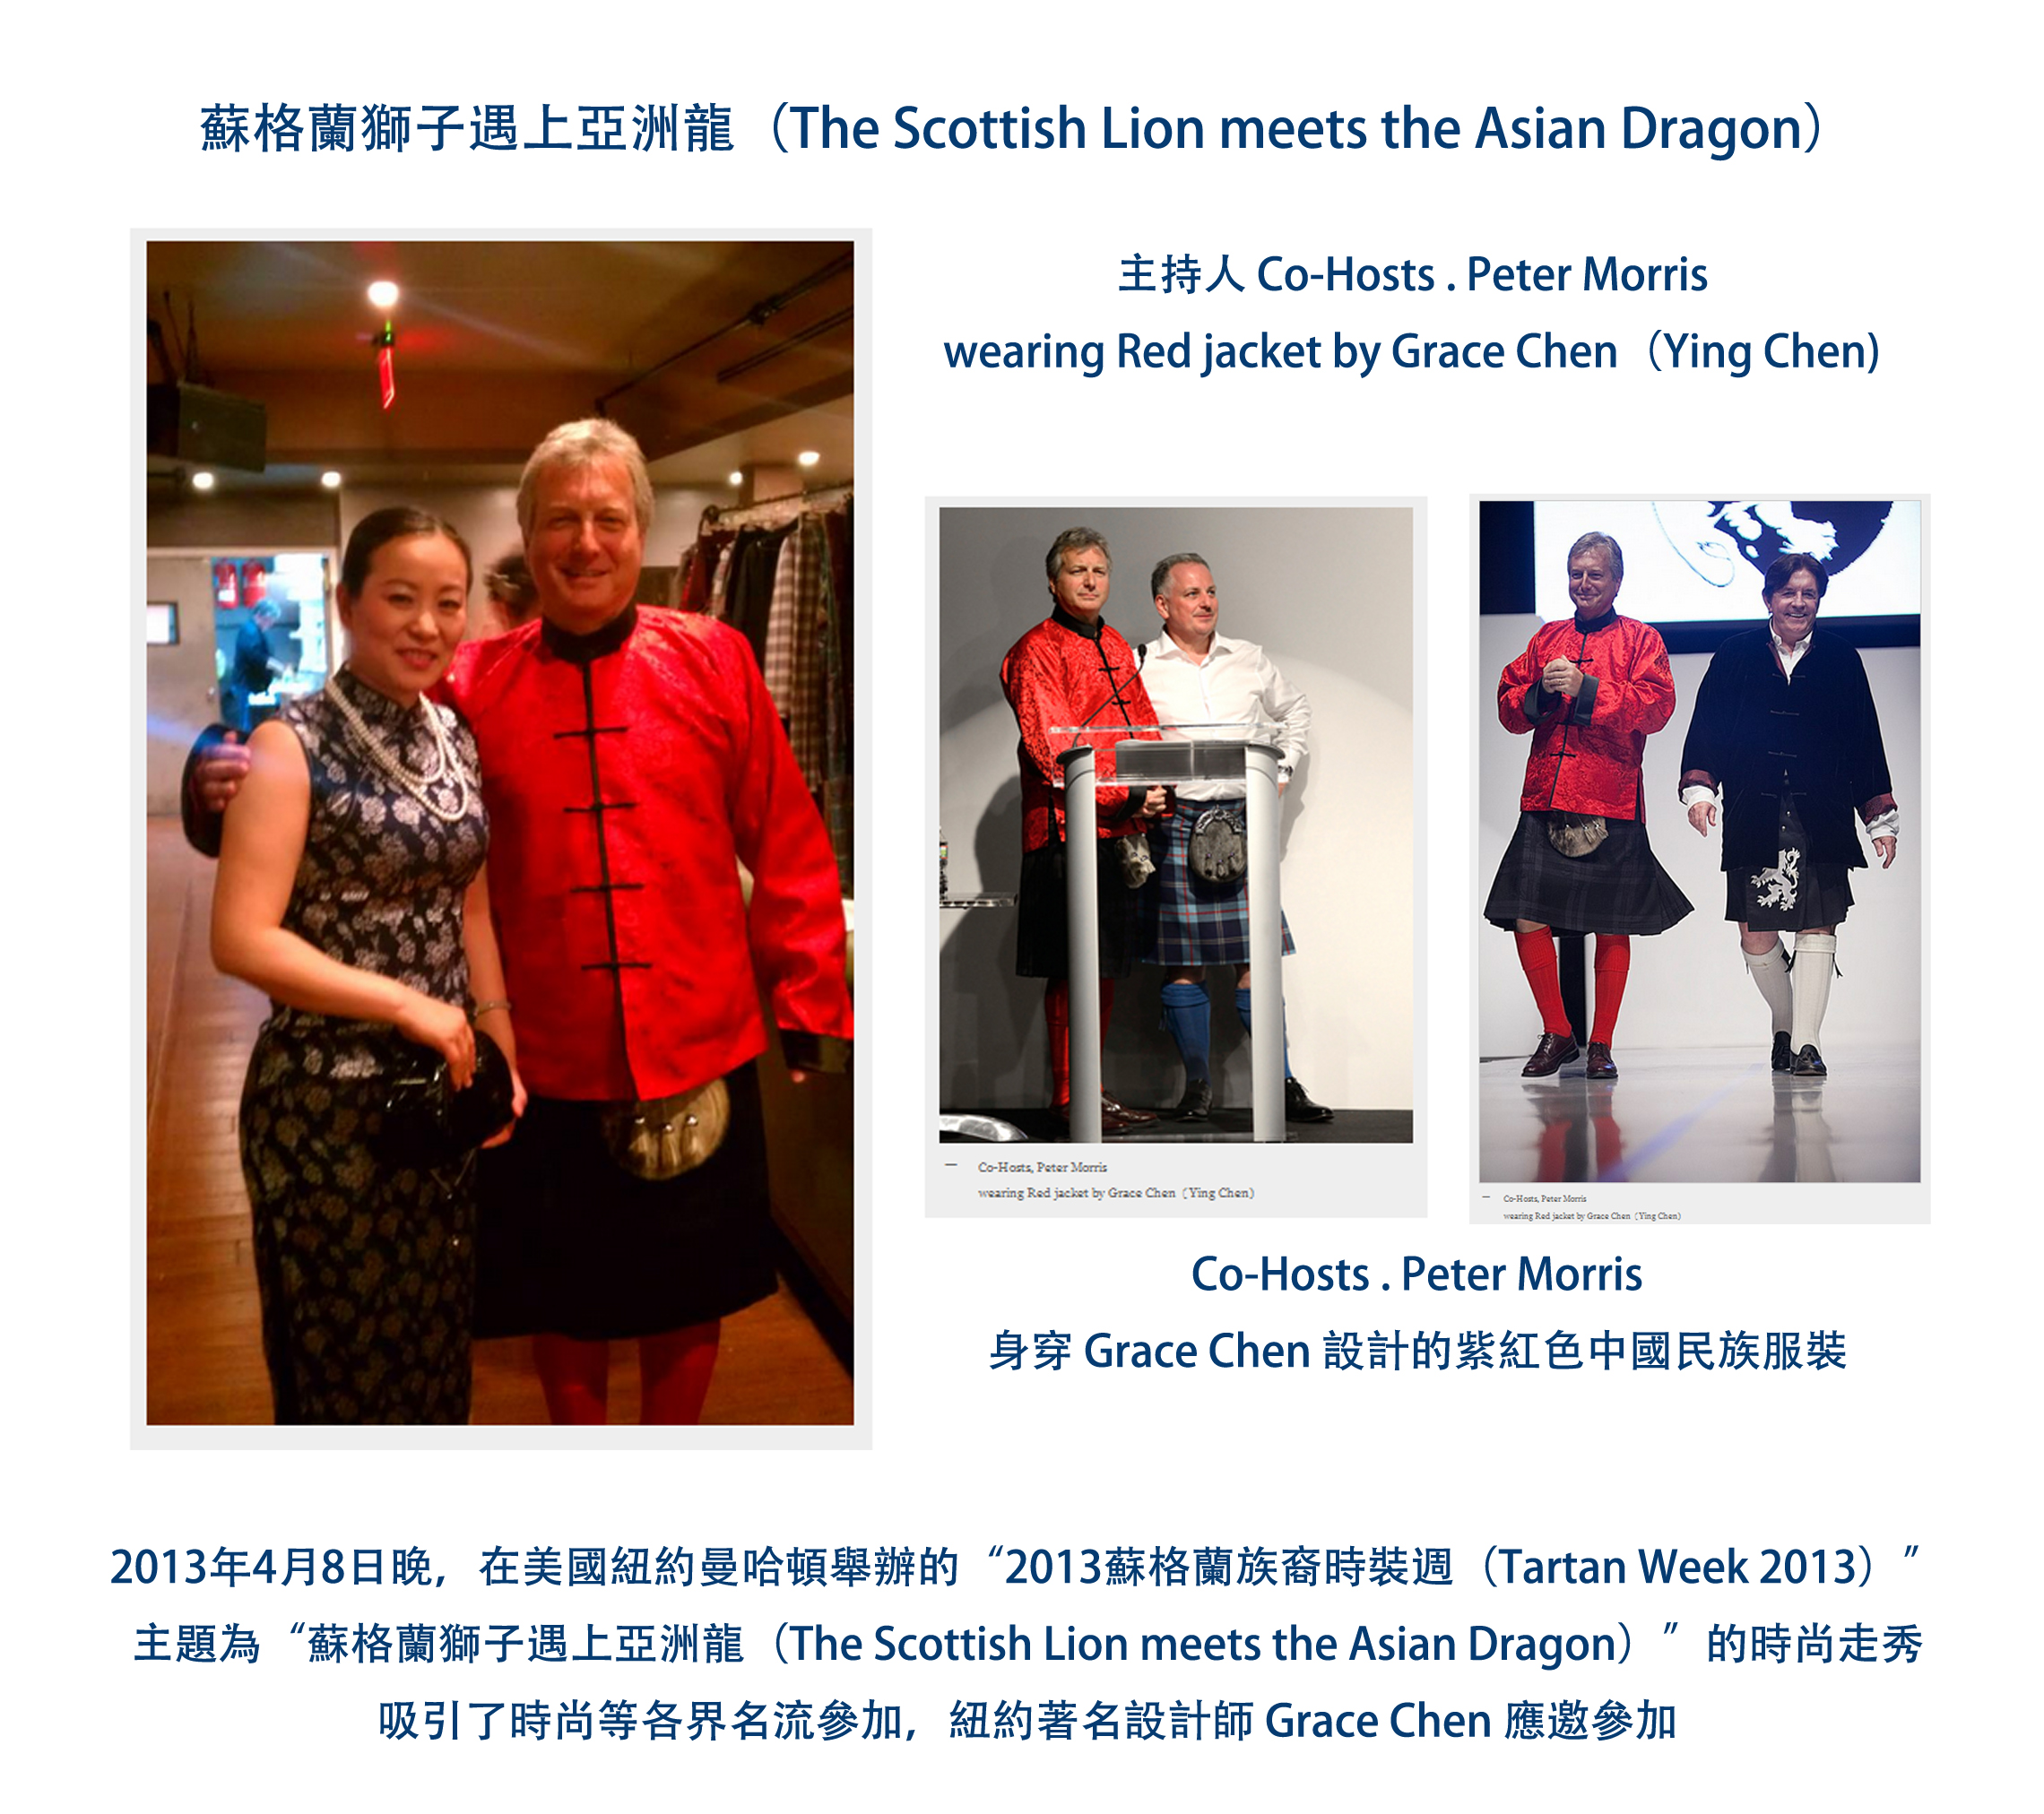 蘇格蘭獅子遇上亞洲龍The Scottish Lion meets the Asian Dragon-zhuchiren  Co-Hosts - Peter Morris.jpg